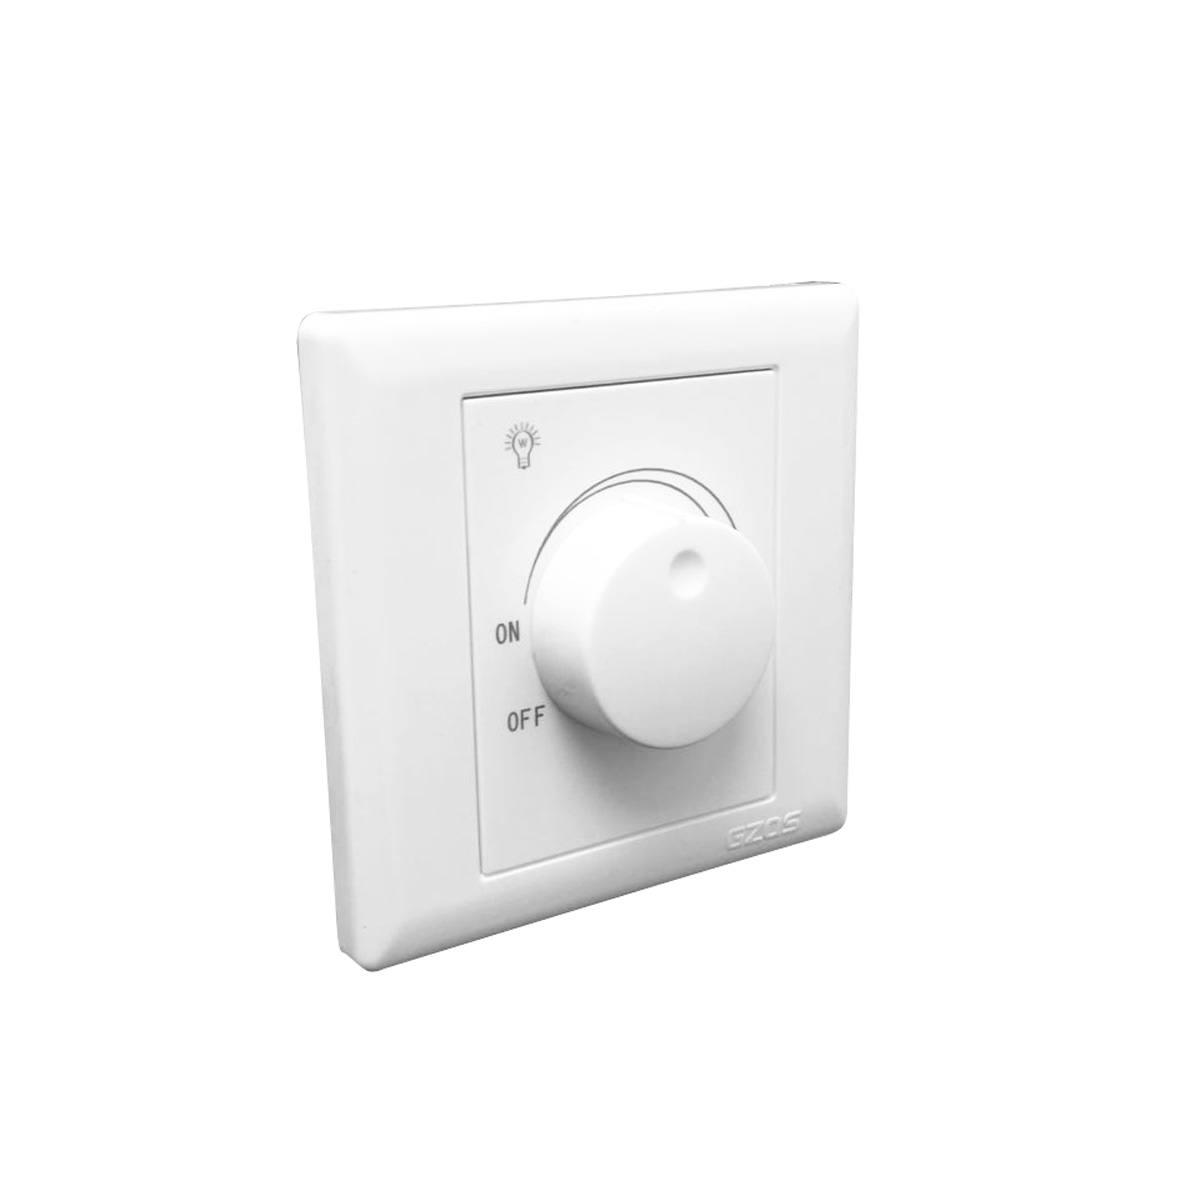 Controller Dimmer Adjustable for LED light bulbs 220 volt connections within the